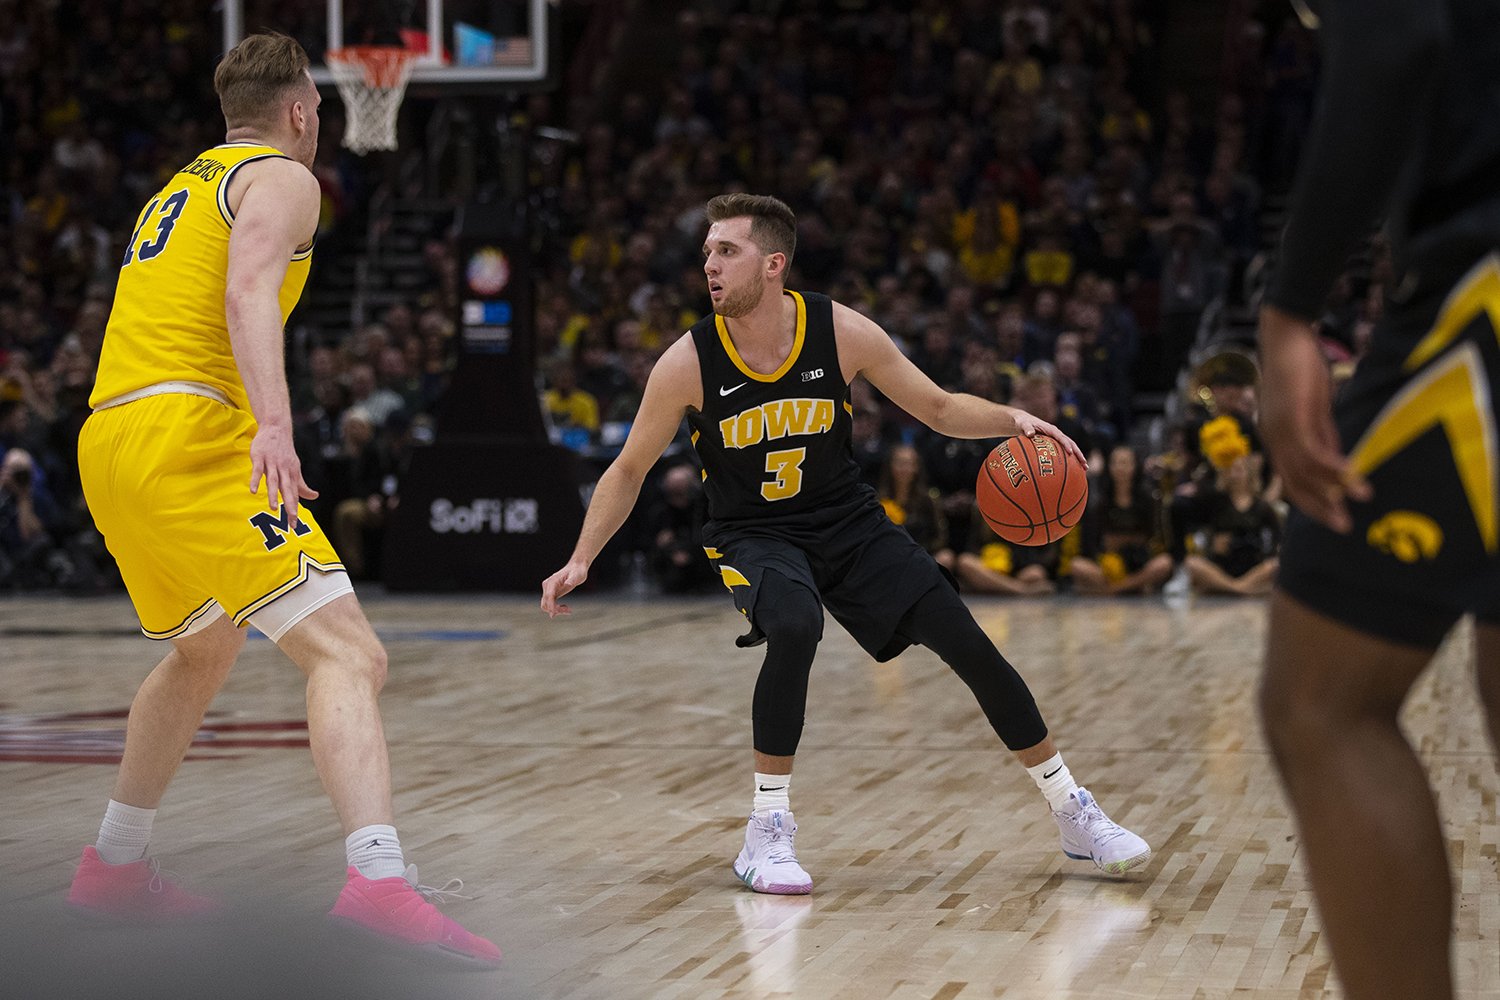 Iowa guard Jordan Bohannon looks to pass the ball during the Iowa/Michigan Big Ten Tournament men's basketball game in the United Center in Chicago on Friday, March 15, 2019. The Wolverines defeated the Hawkeyes, 74-53. (Lily Smith/The Daily Iowan)